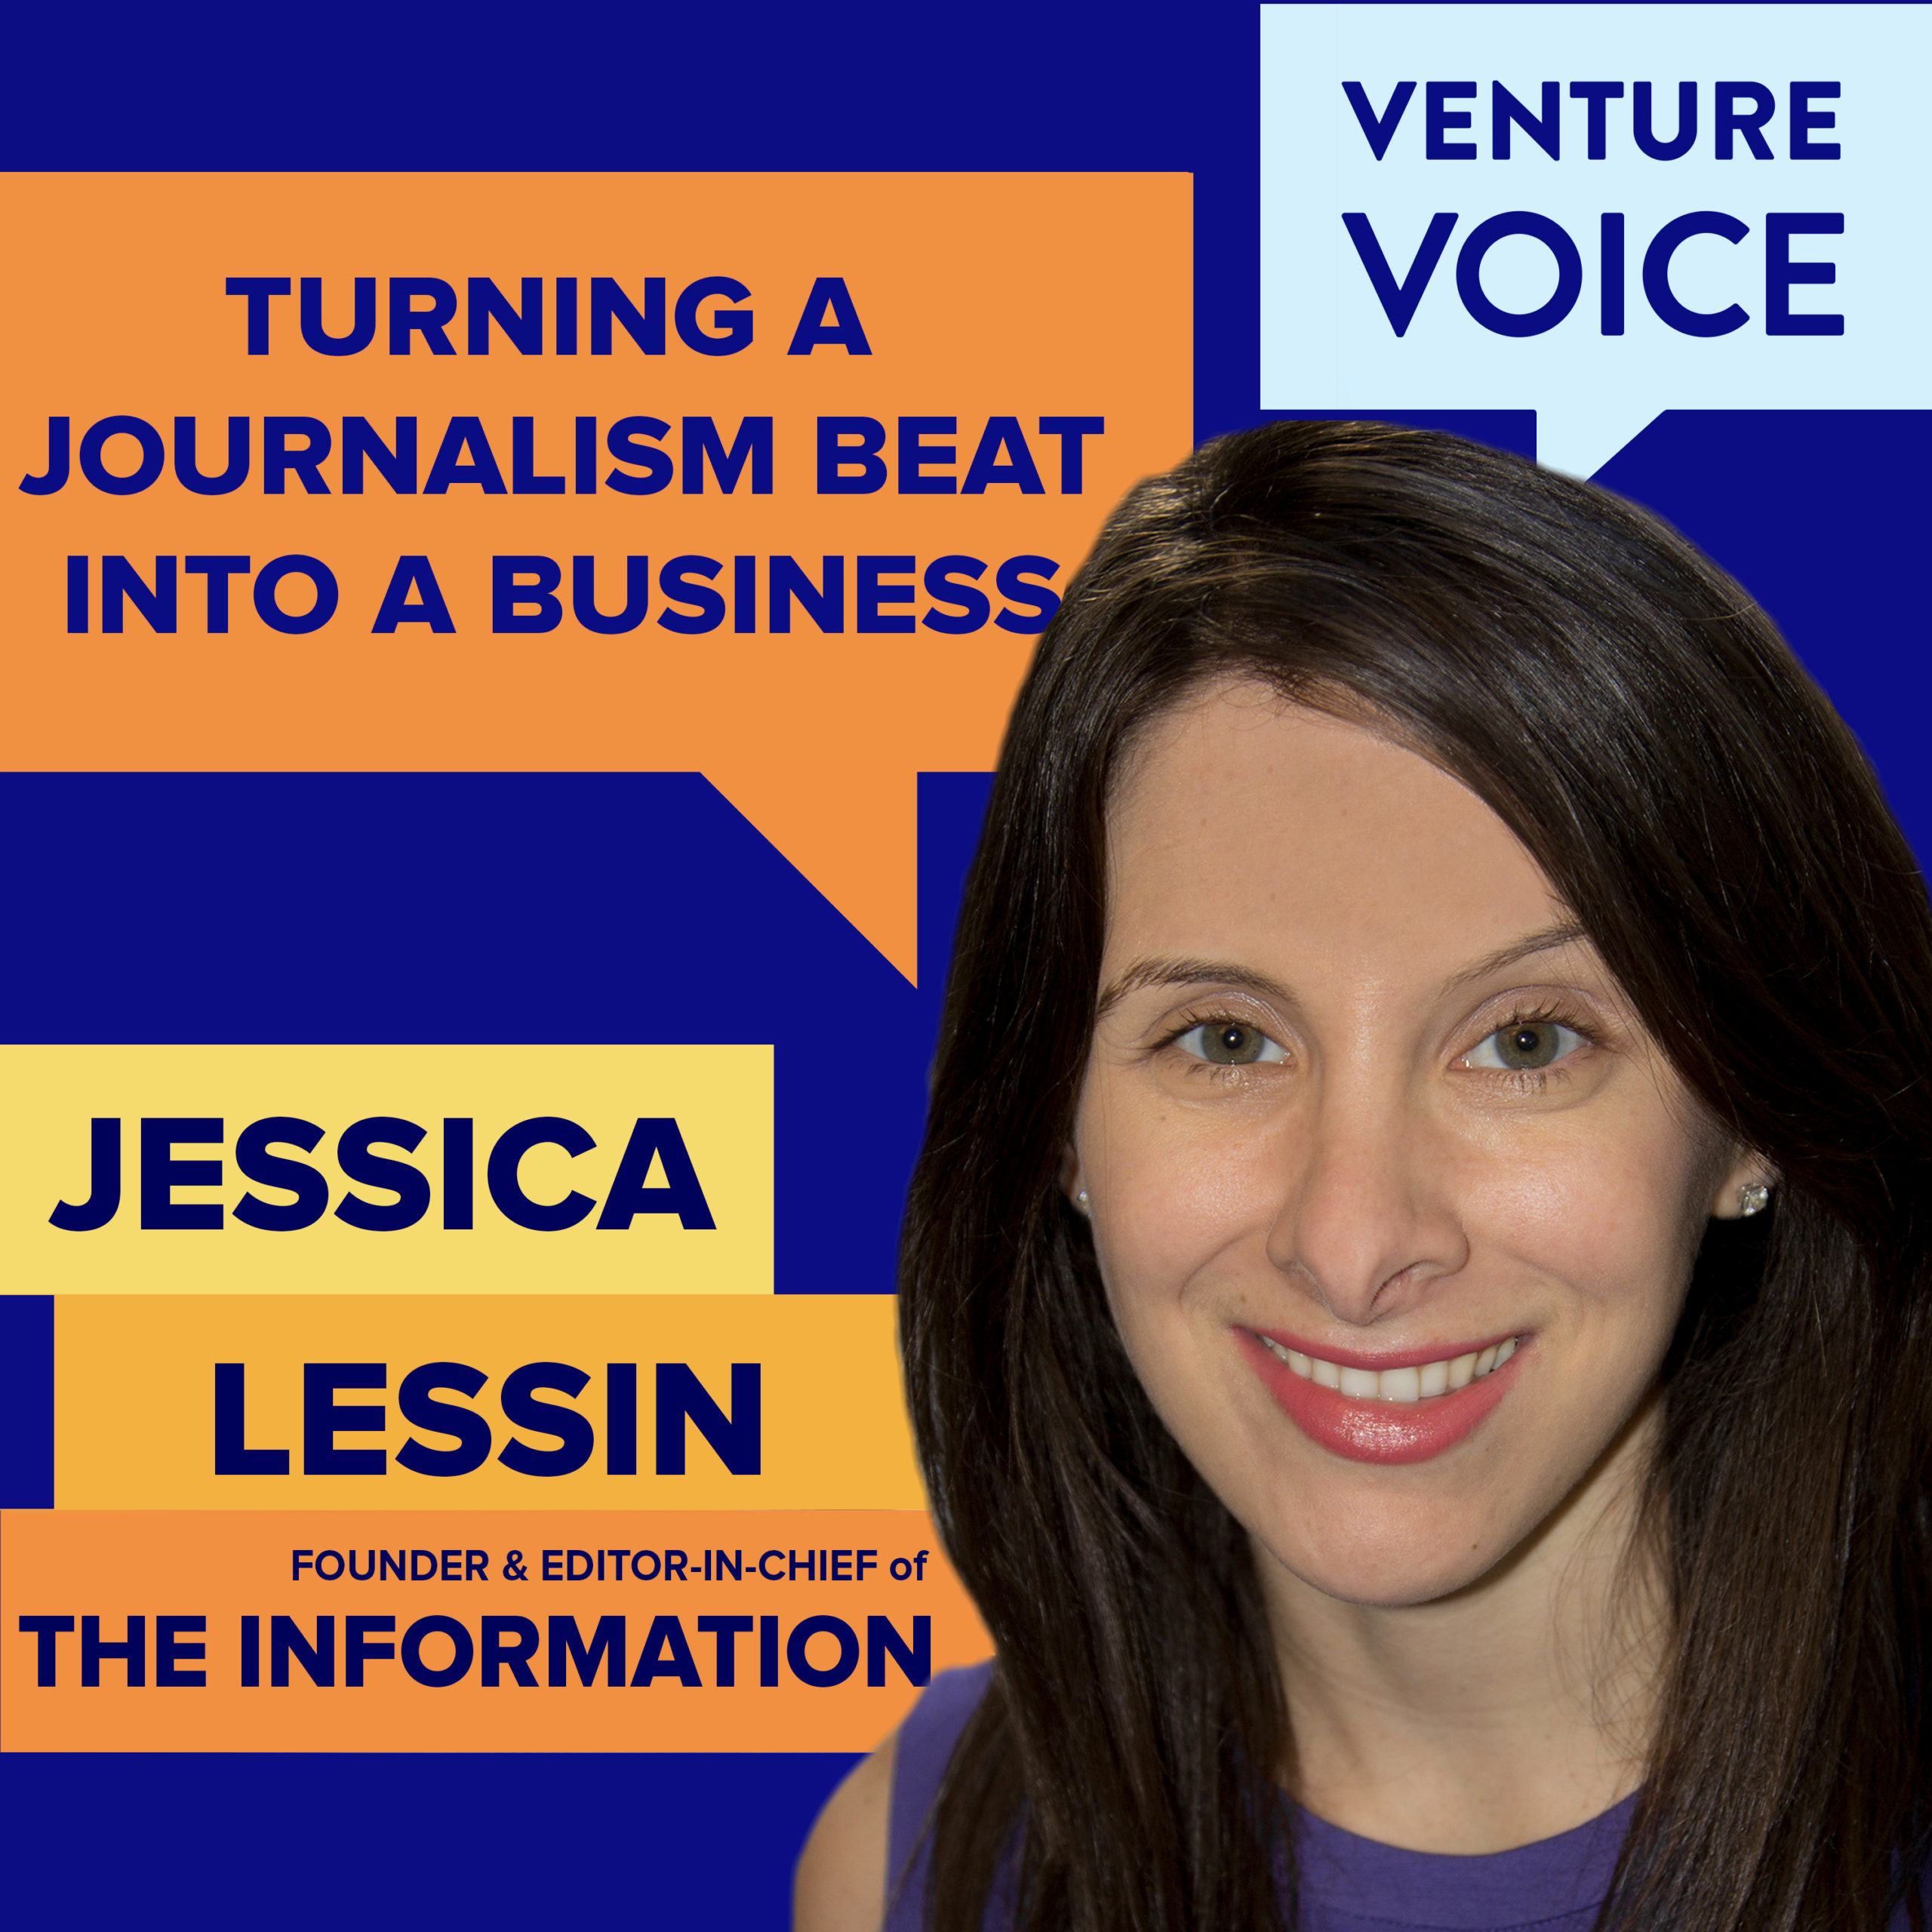 Jessica Lessin of The Information